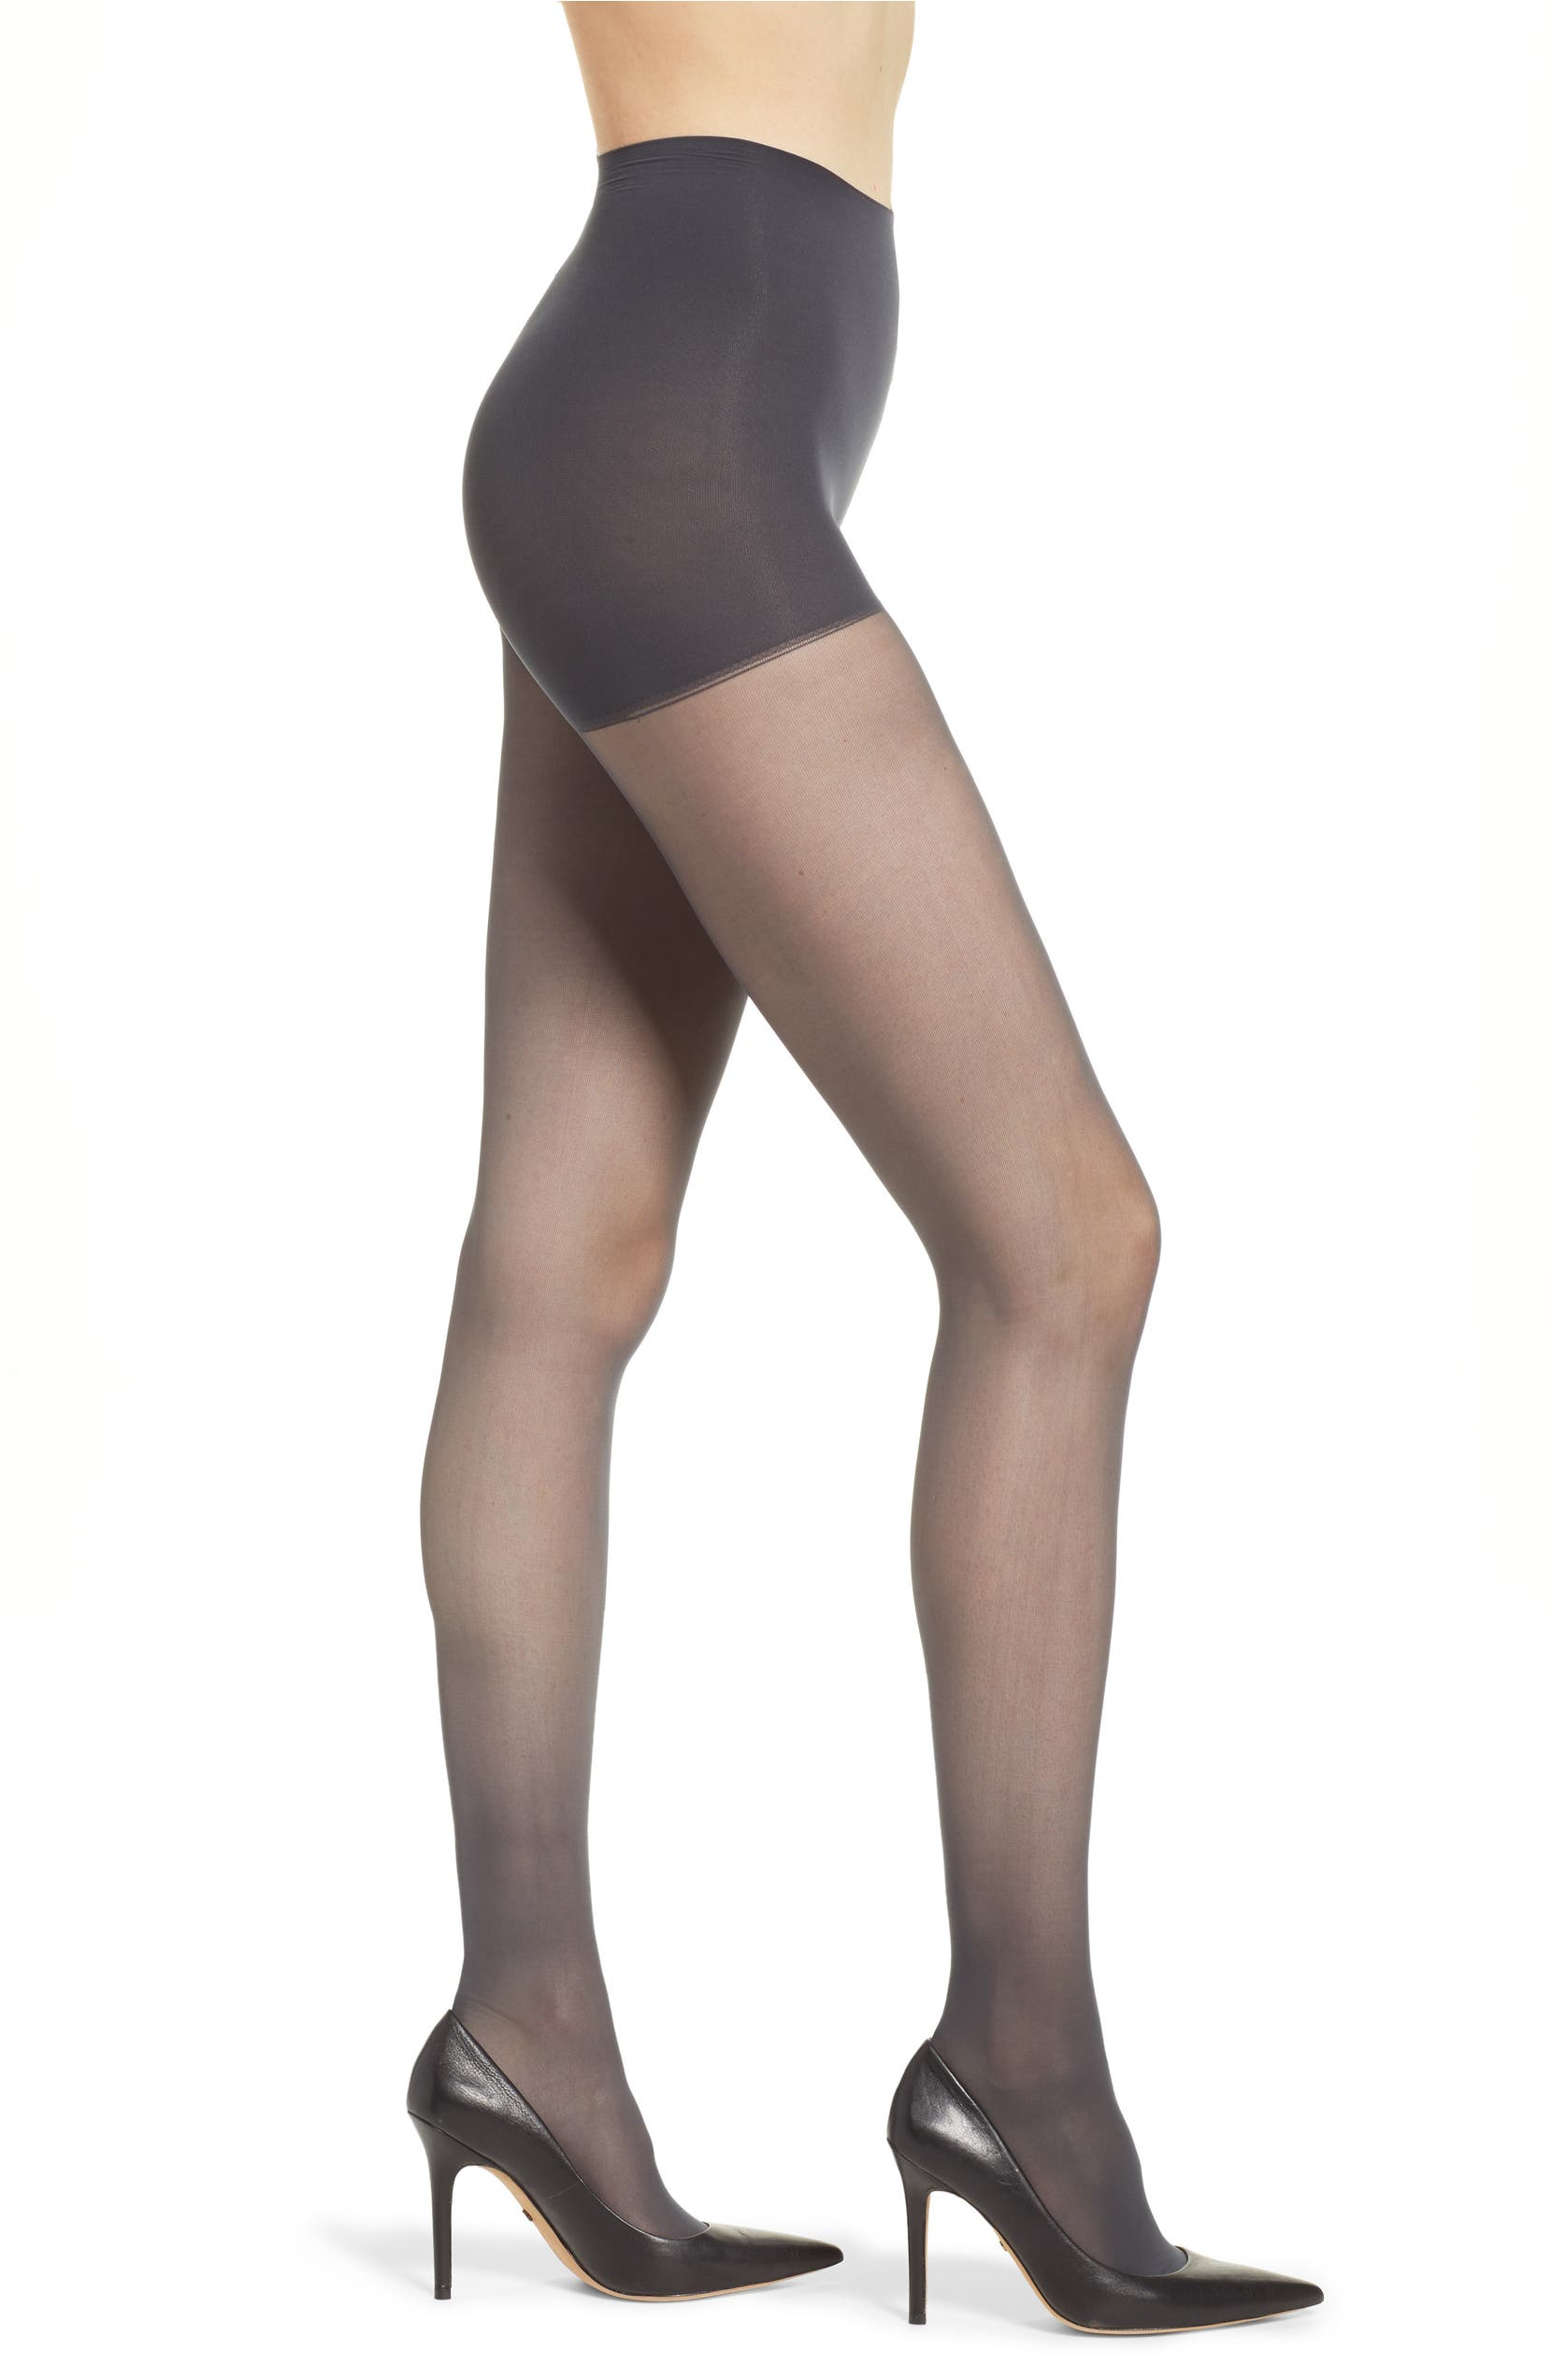 598964e0ee17c DKNY Light Opaque Control Top Tights (2 for  25)